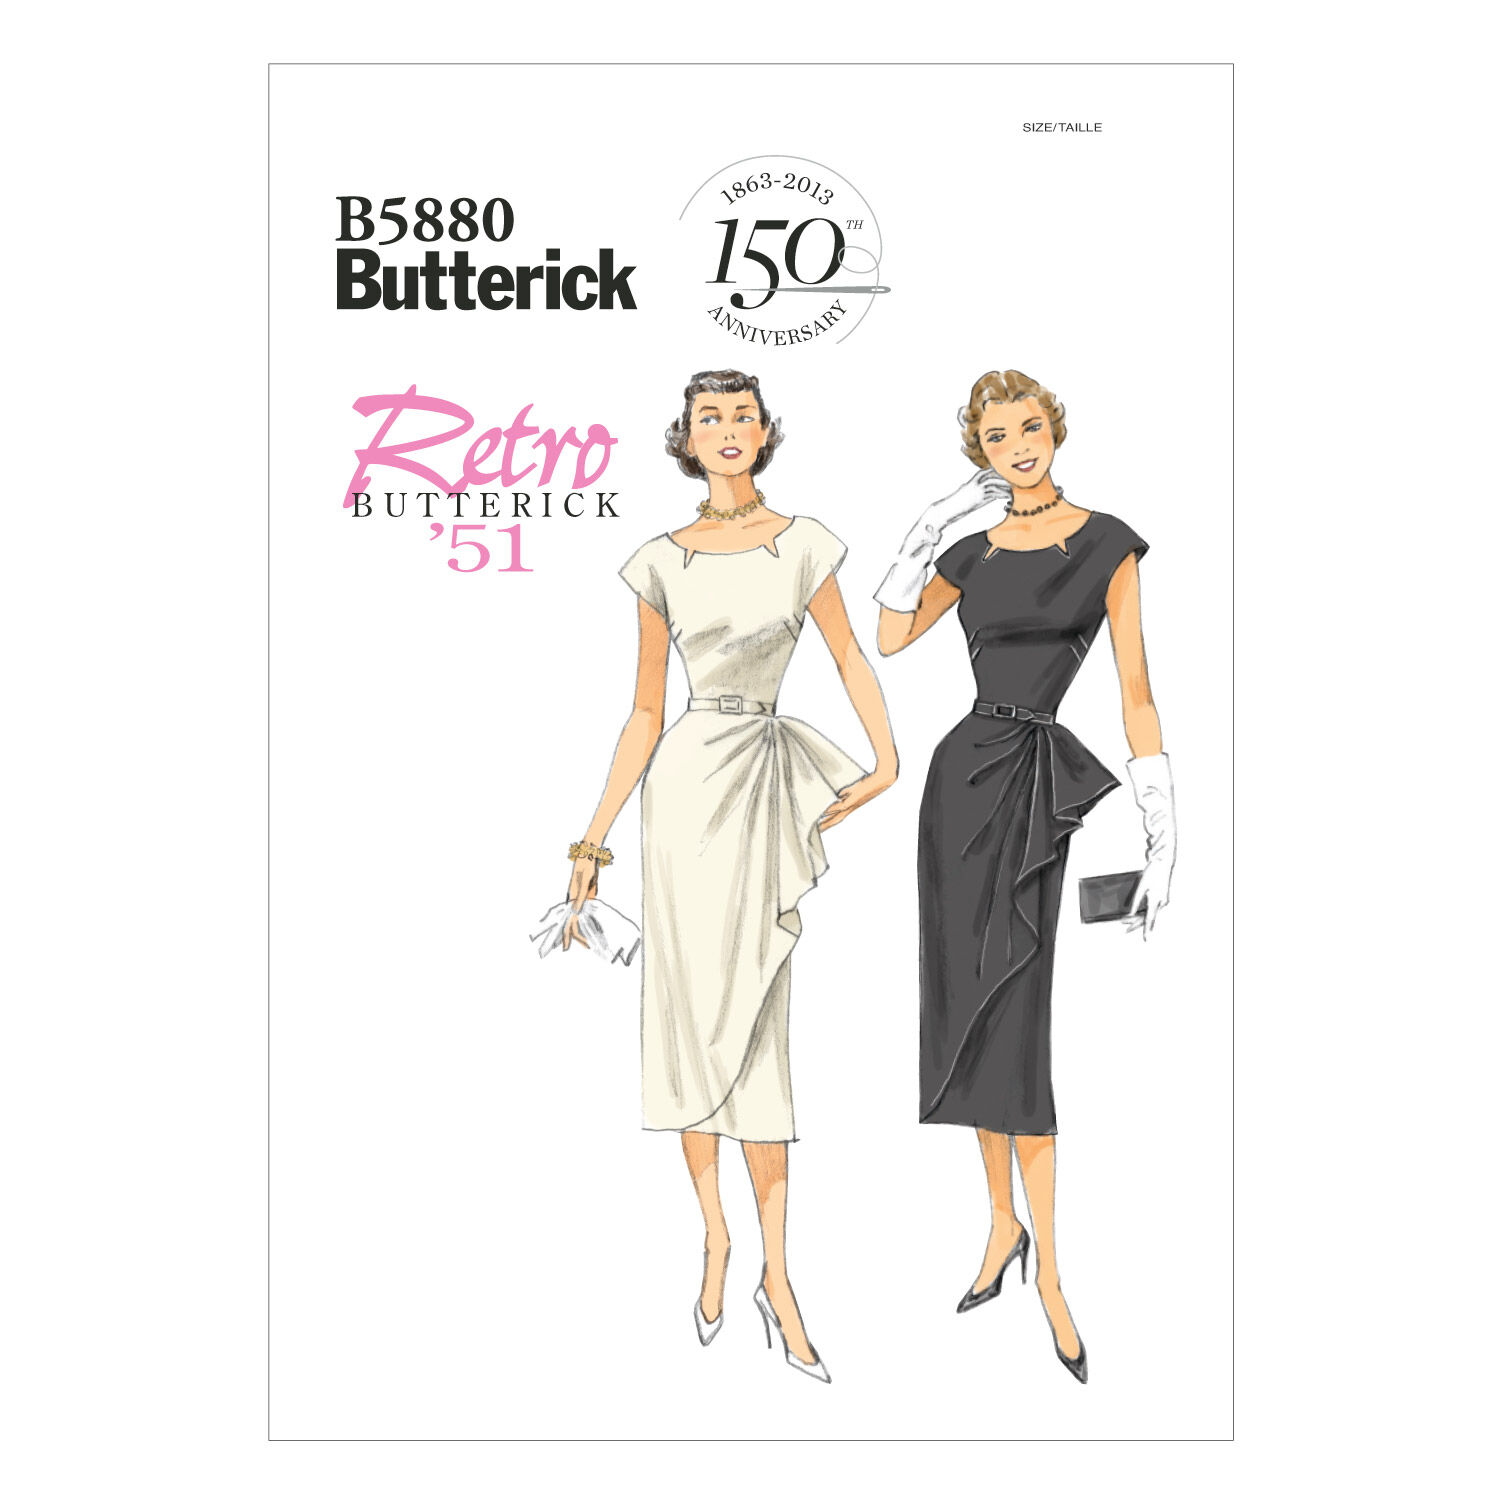 1950s Sewing Patterns | Dresses, Skirts, Tops, Mens Butterick Misses Dress - B5880 $11.97 AT vintagedancer.com